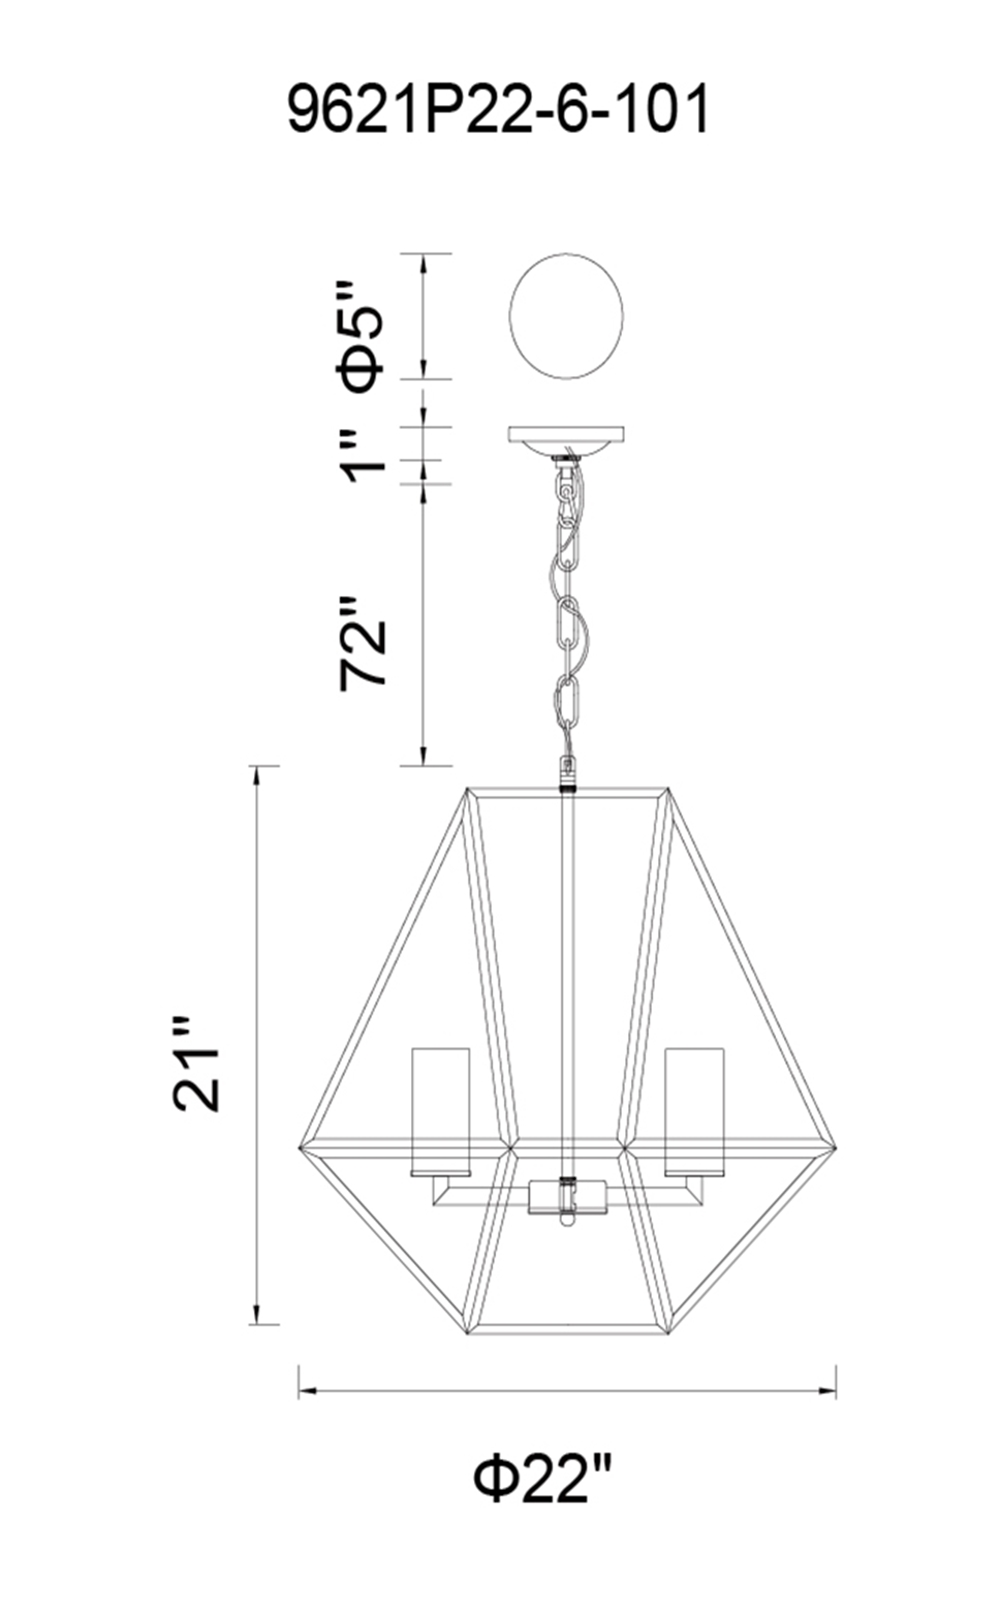 CWI Lighting Trenton 6 Light Candle Chandelier With Black Finish Model: 9621P22-6-101 Line Drawing